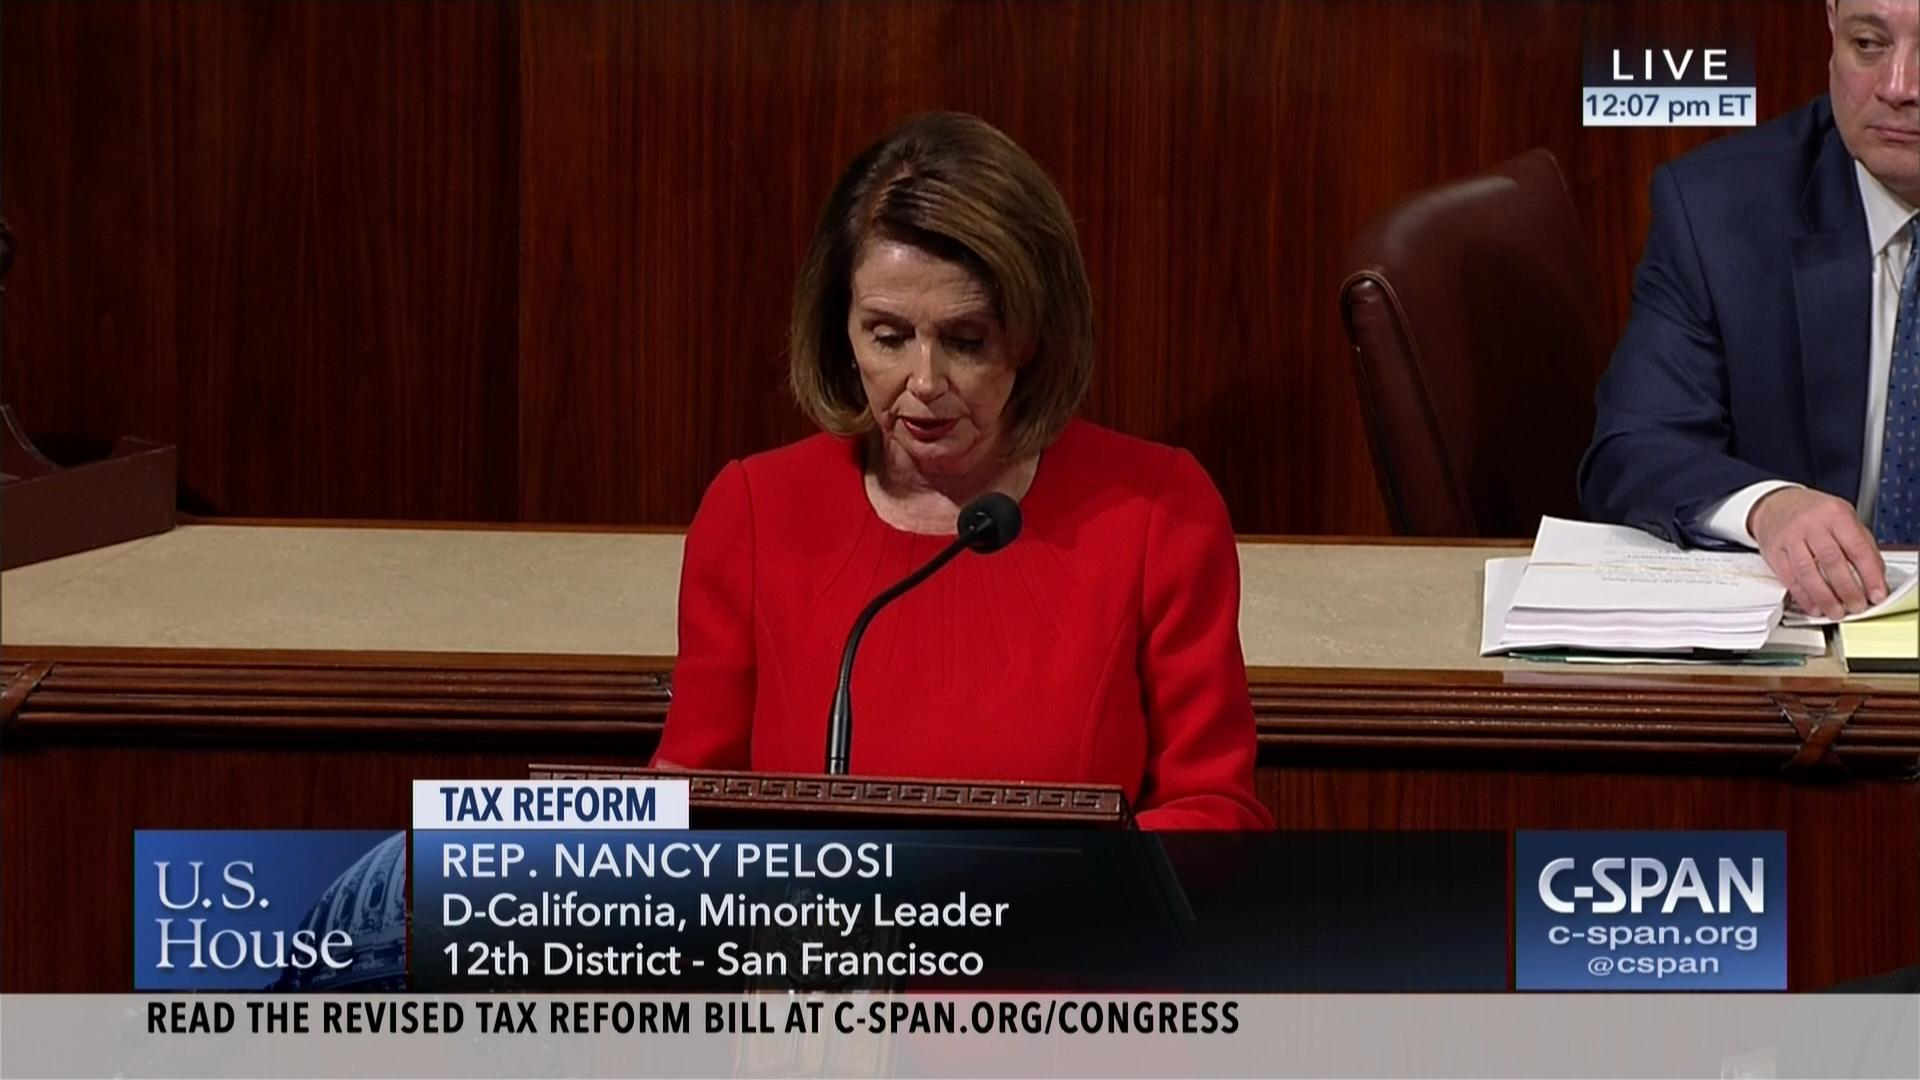 Nancy pelosi wants to put a windfall tax